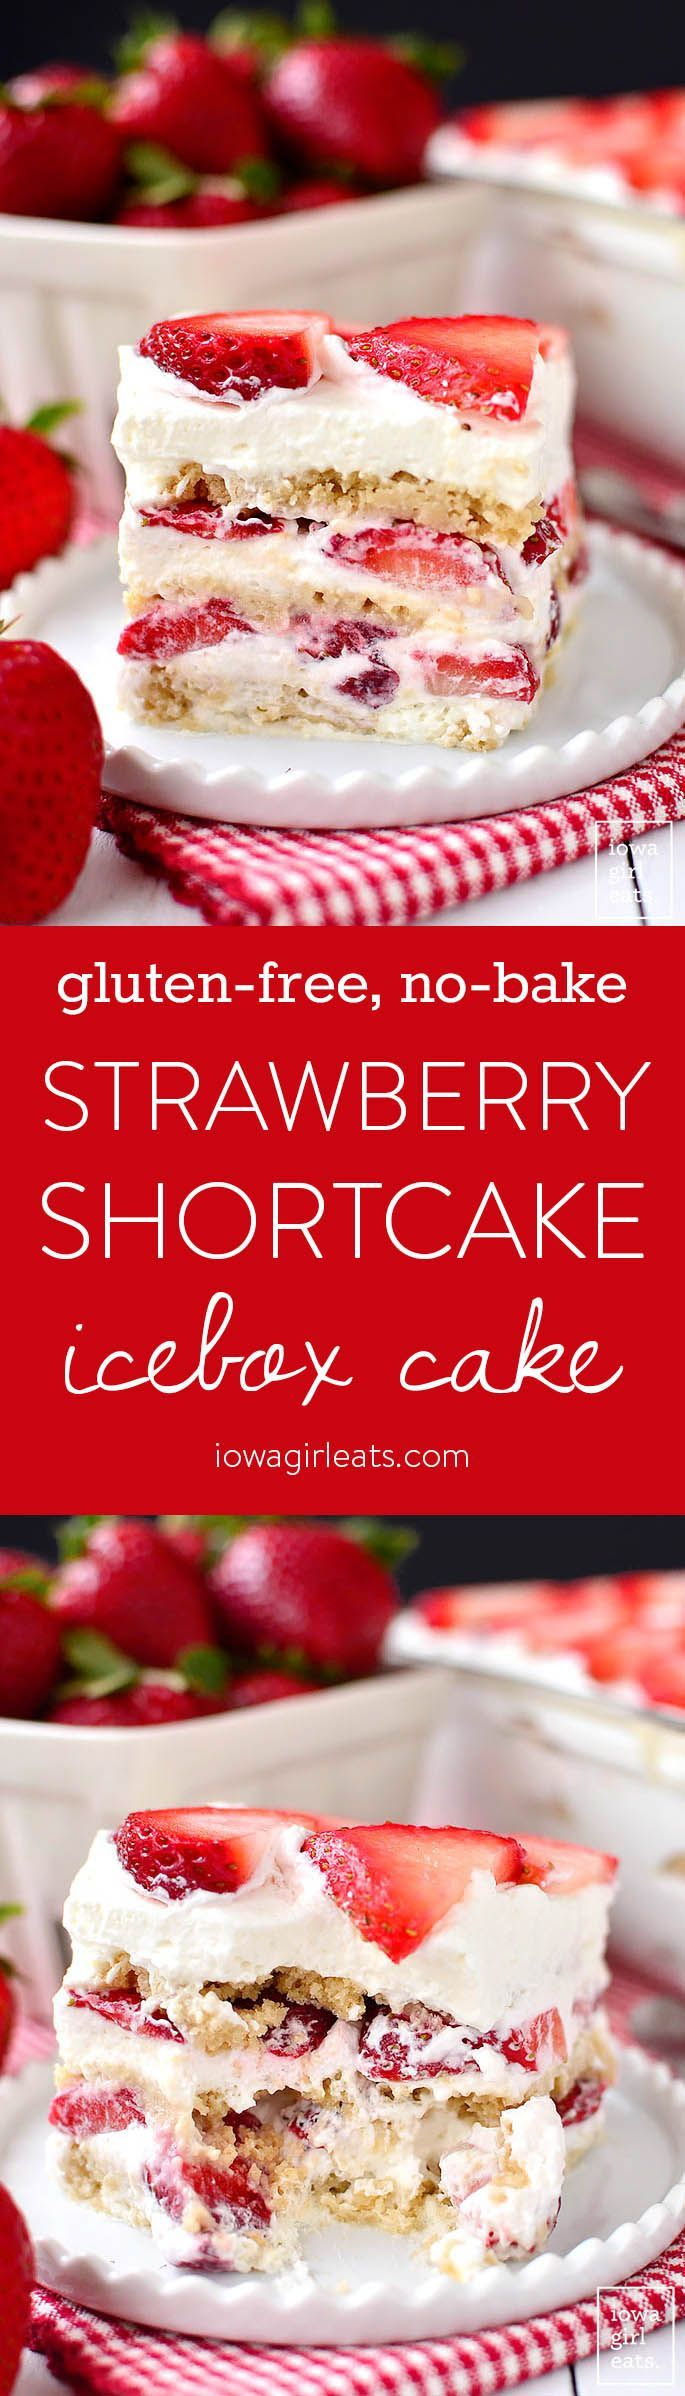 Gluten-Free No-Bake Strawberry Shortcake Icebox Cake is a perfectly sweet, gluten-free summer dessert recipe. Just 5 ingredients and make-ahead, too! | iowagirleats.com